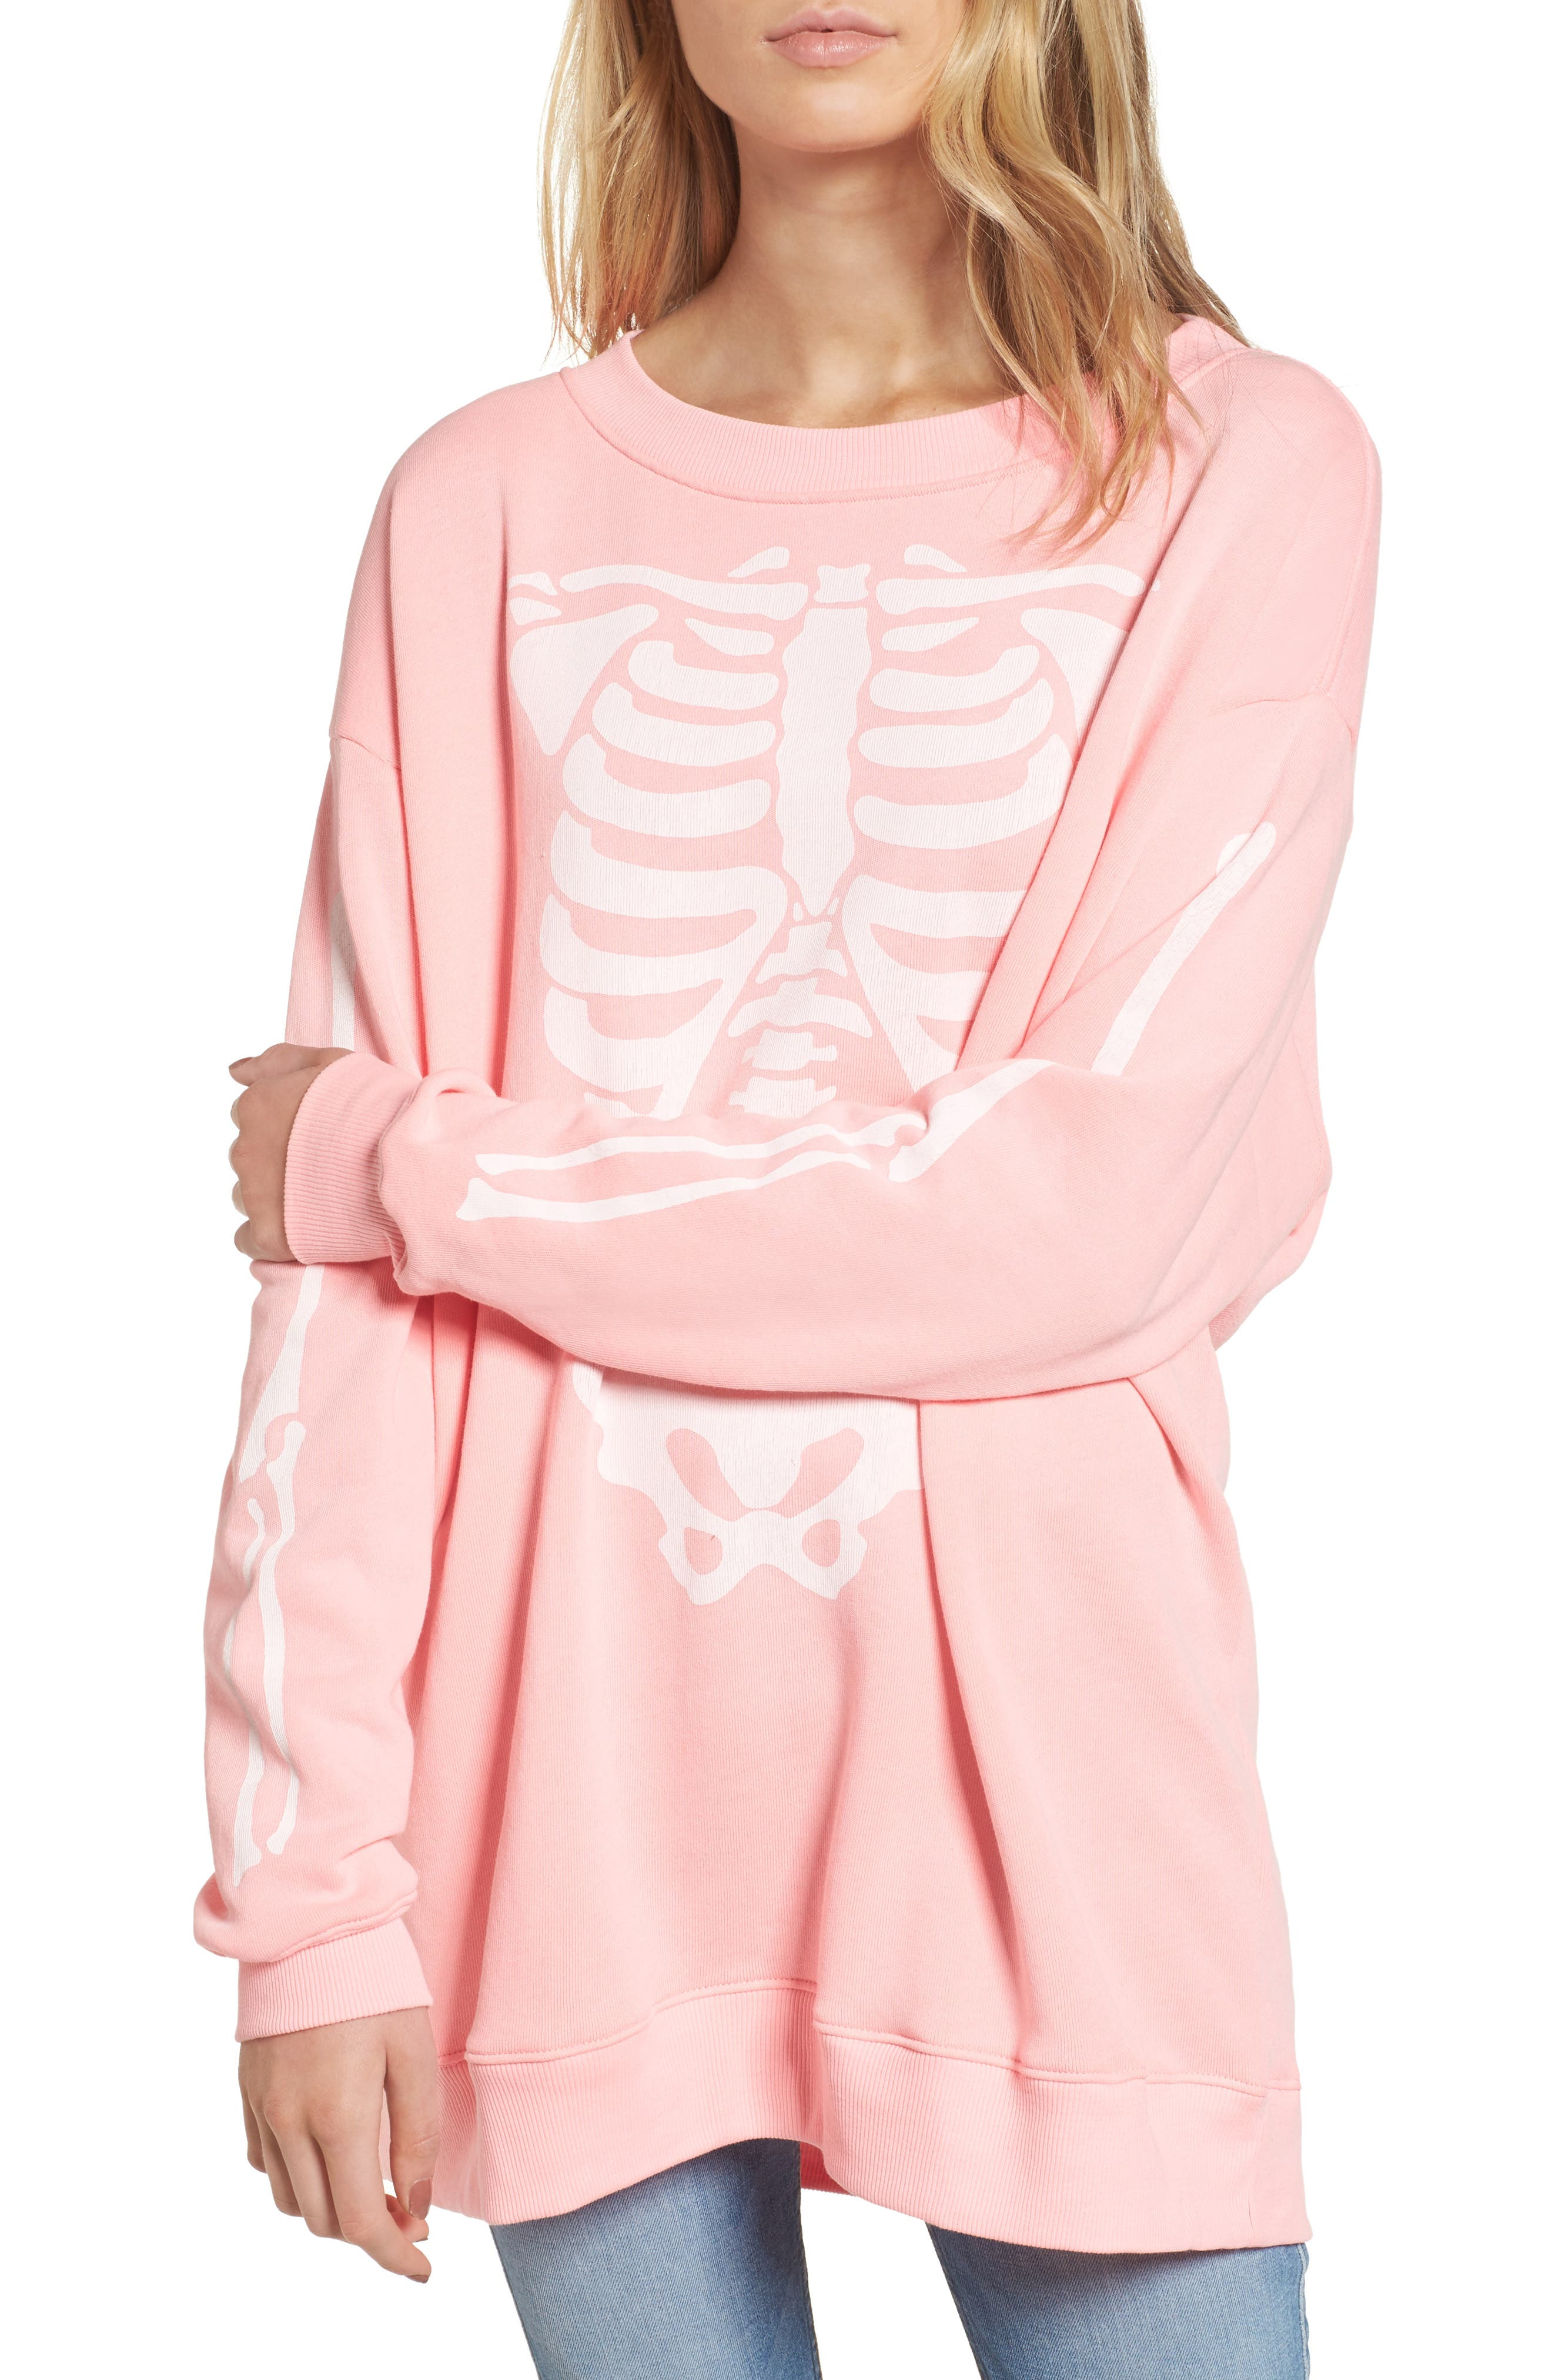 Wildfox X-Ray Vision Sweatshirt